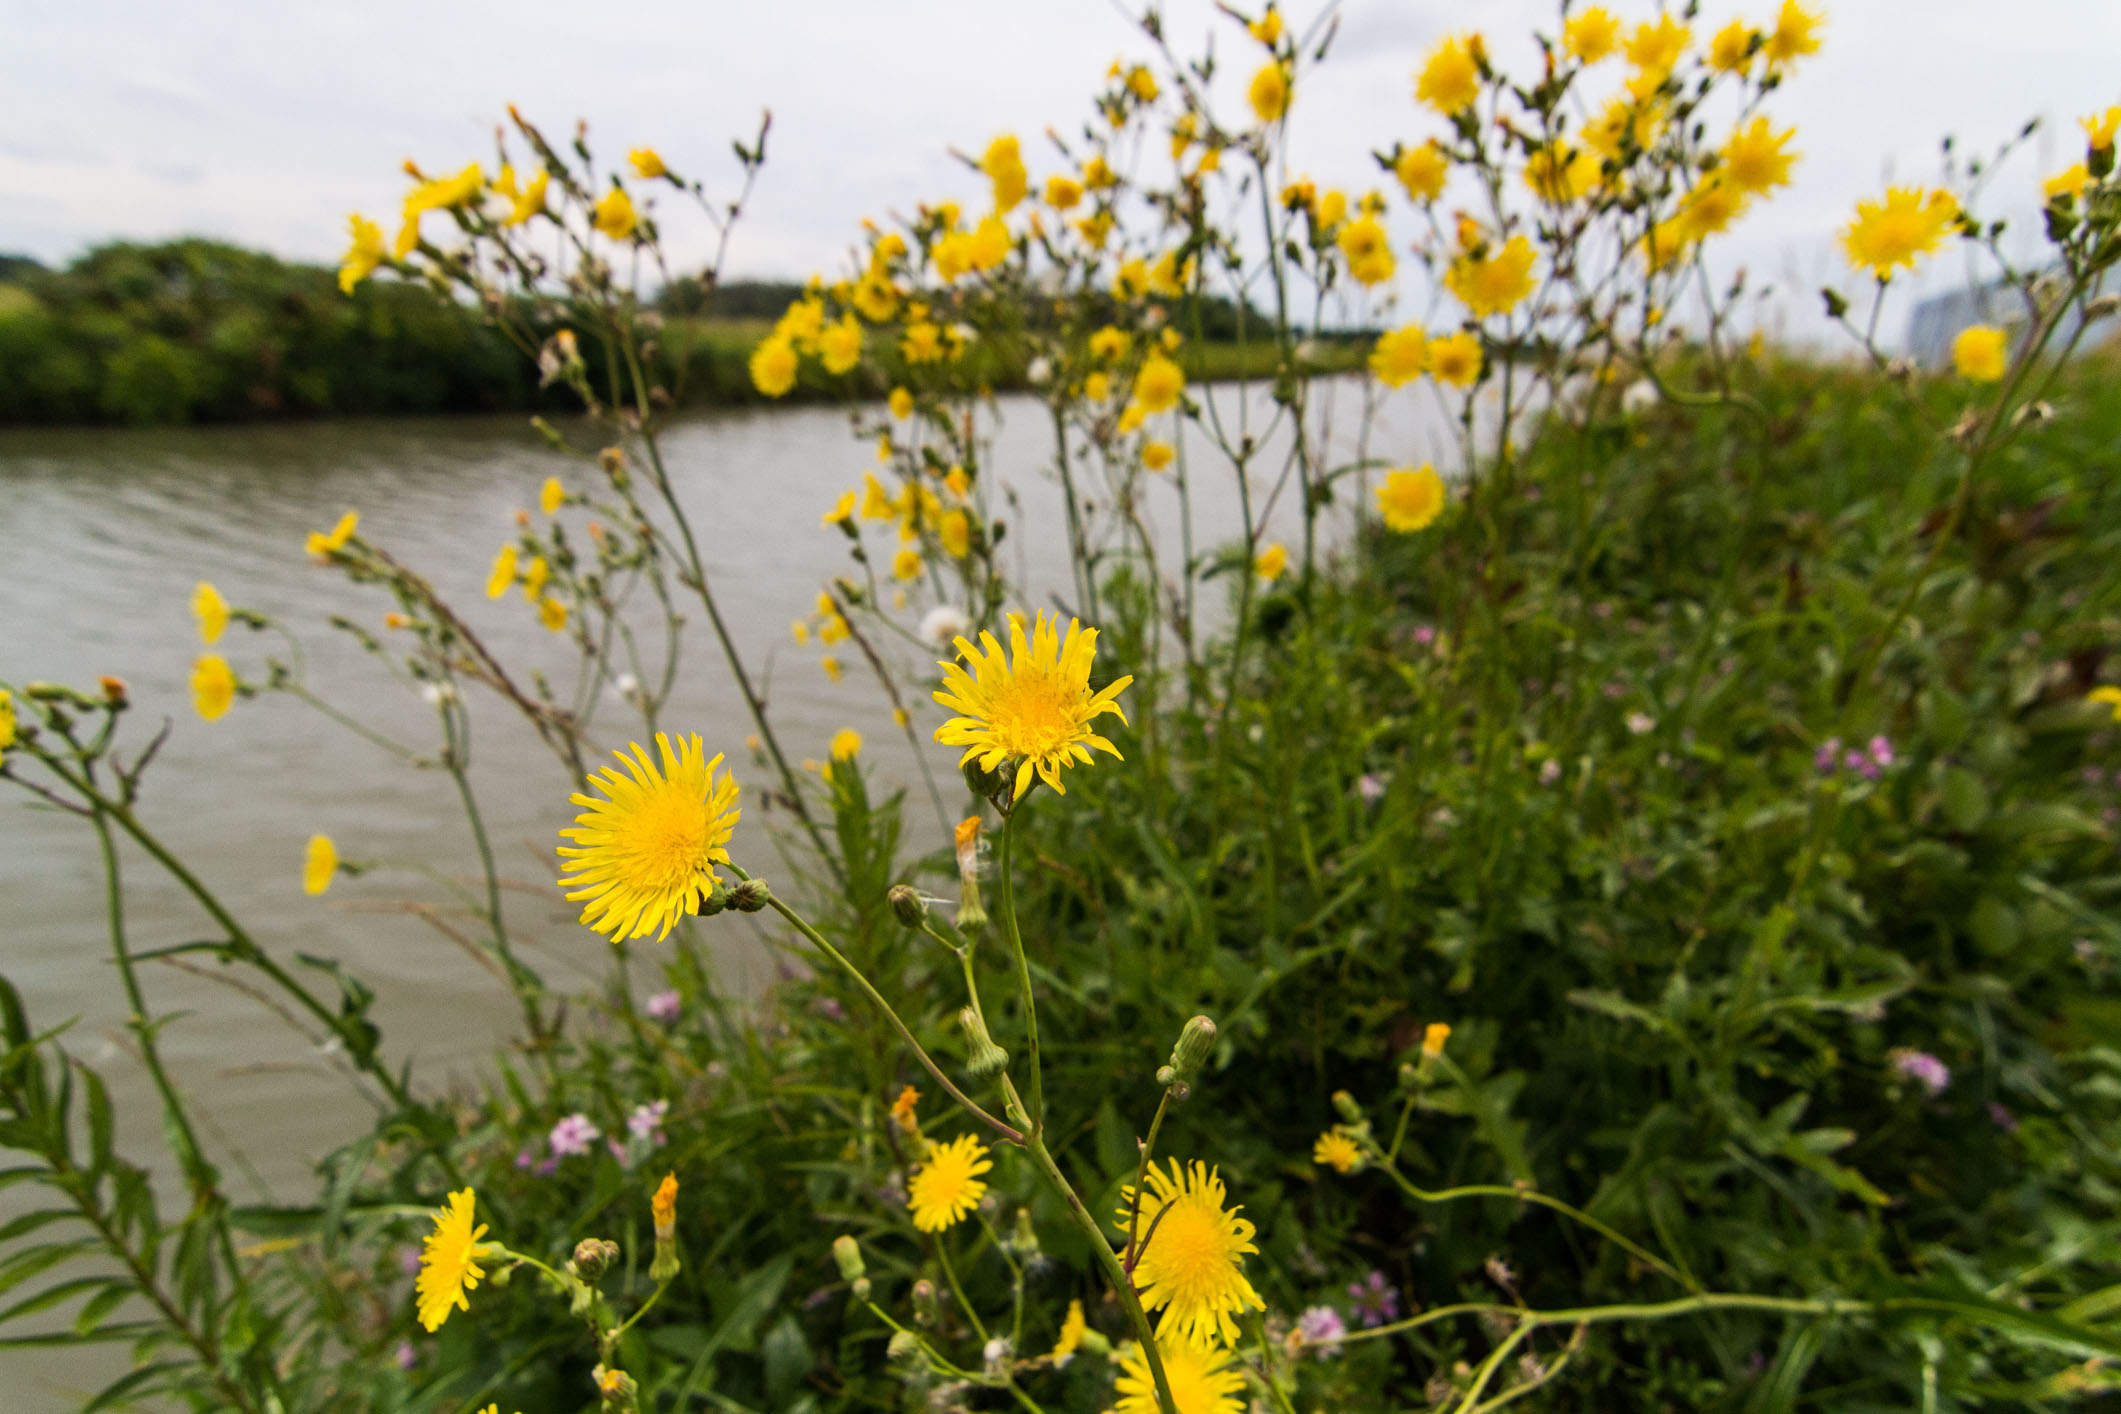 Wildflowers spring from near edge of the cooling pond opposite the AZero parking lot. Photo: Elliott McCrory, AD